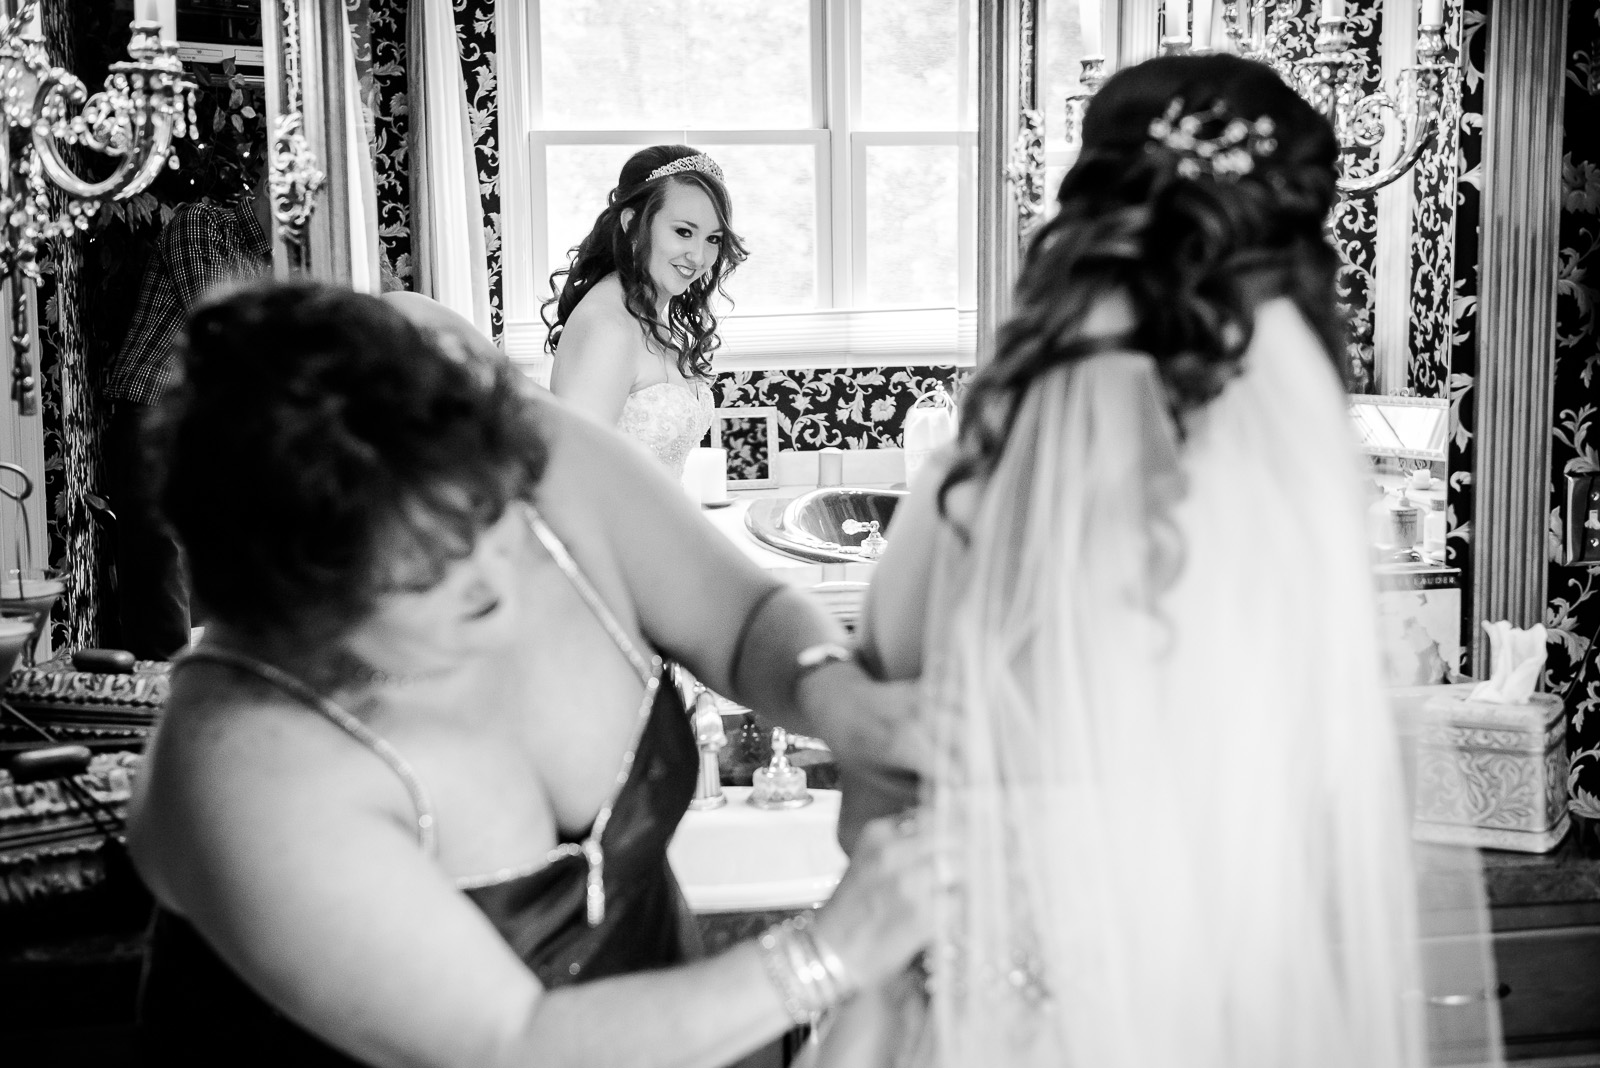 Eric_and_Christy_Photography_Blog_Wedding_Eva_Andrew-1